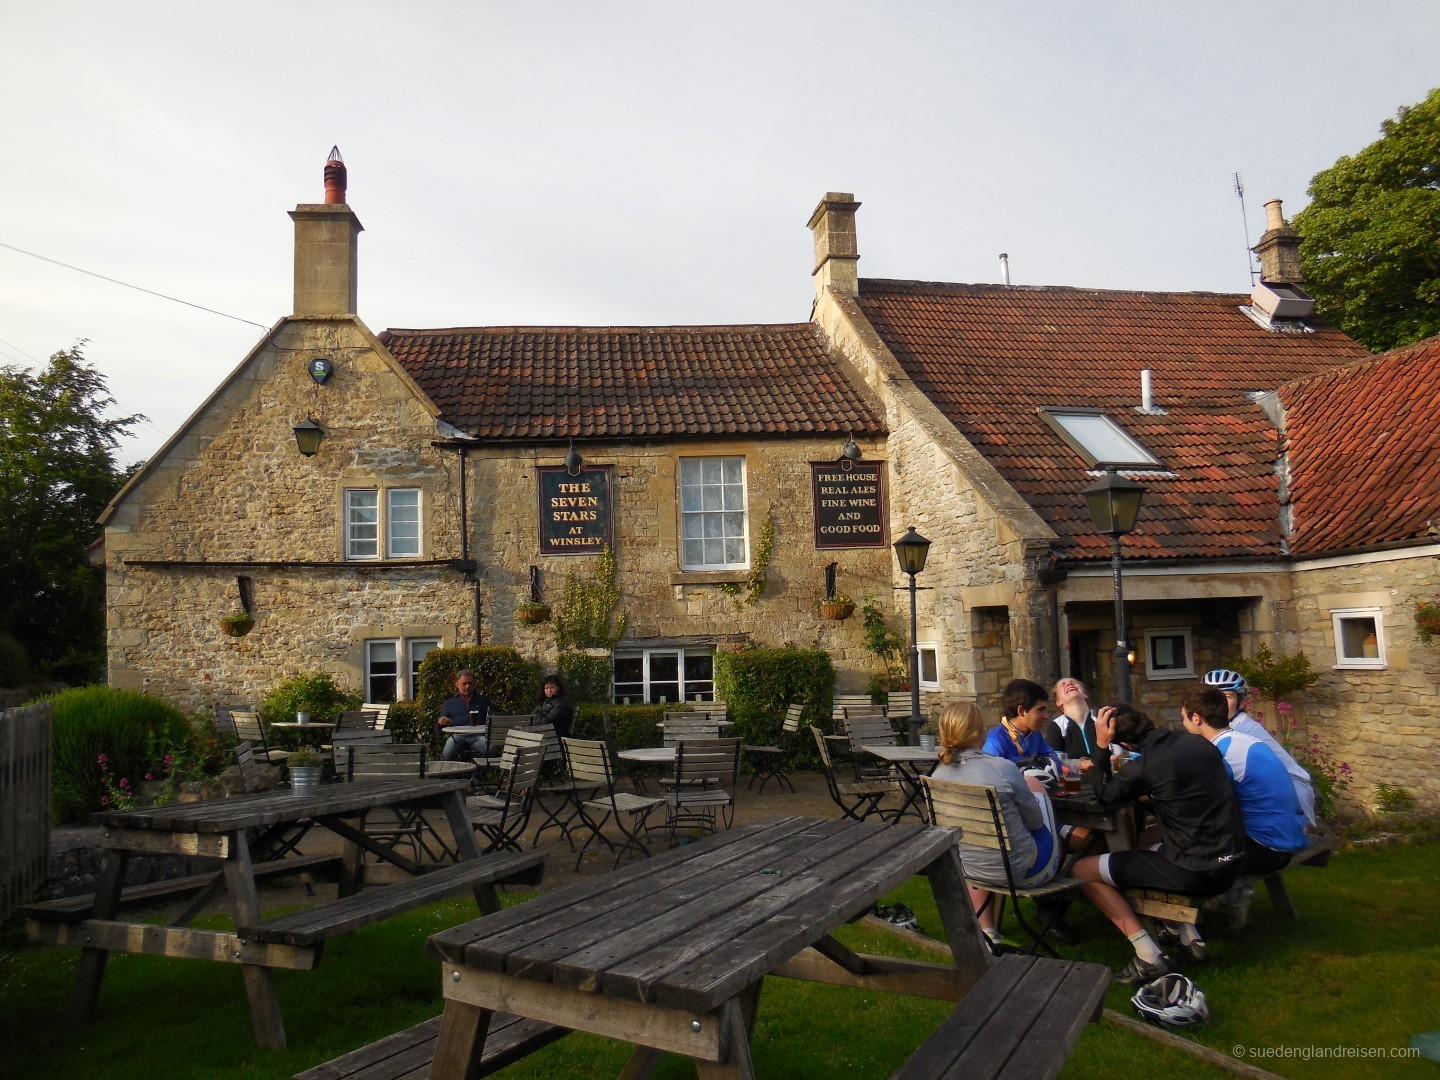 The Seven Stars in Winsley nahe Bradford-on-Avon